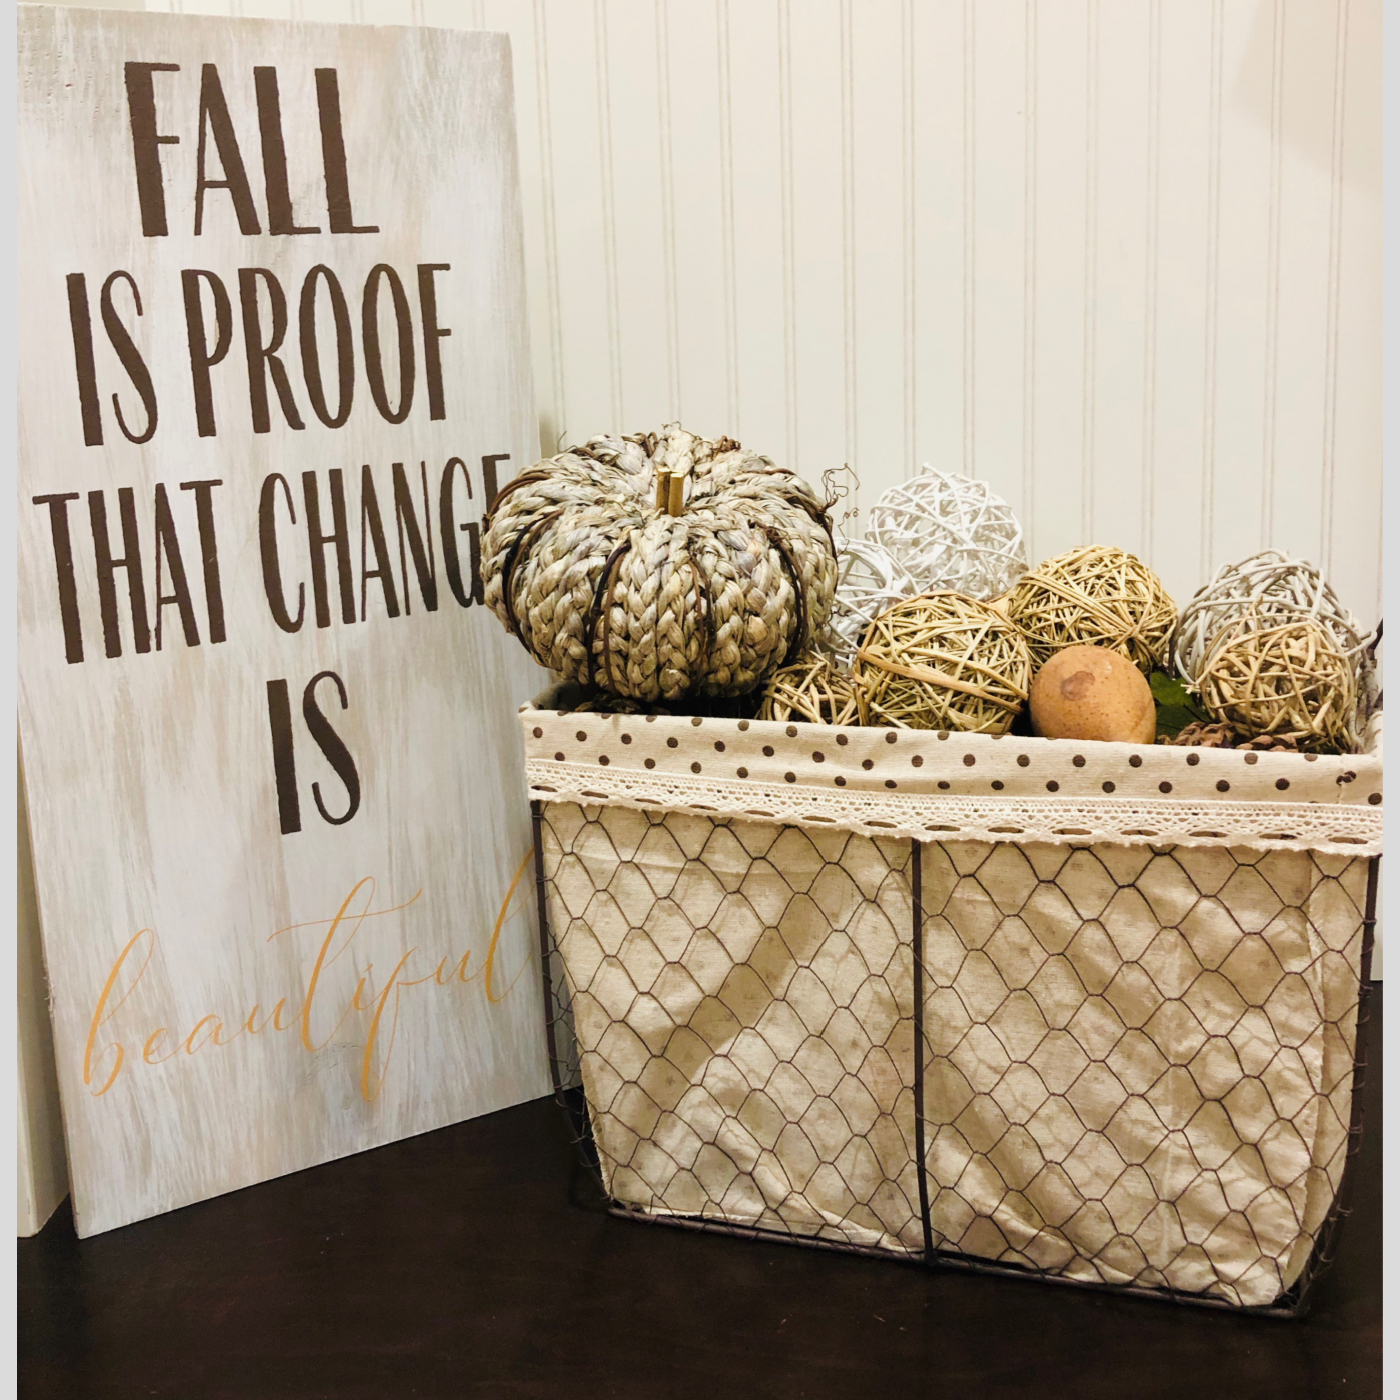 Fall is Proof that Change is Beautiful DIY Wood Sign Bethlehem PA